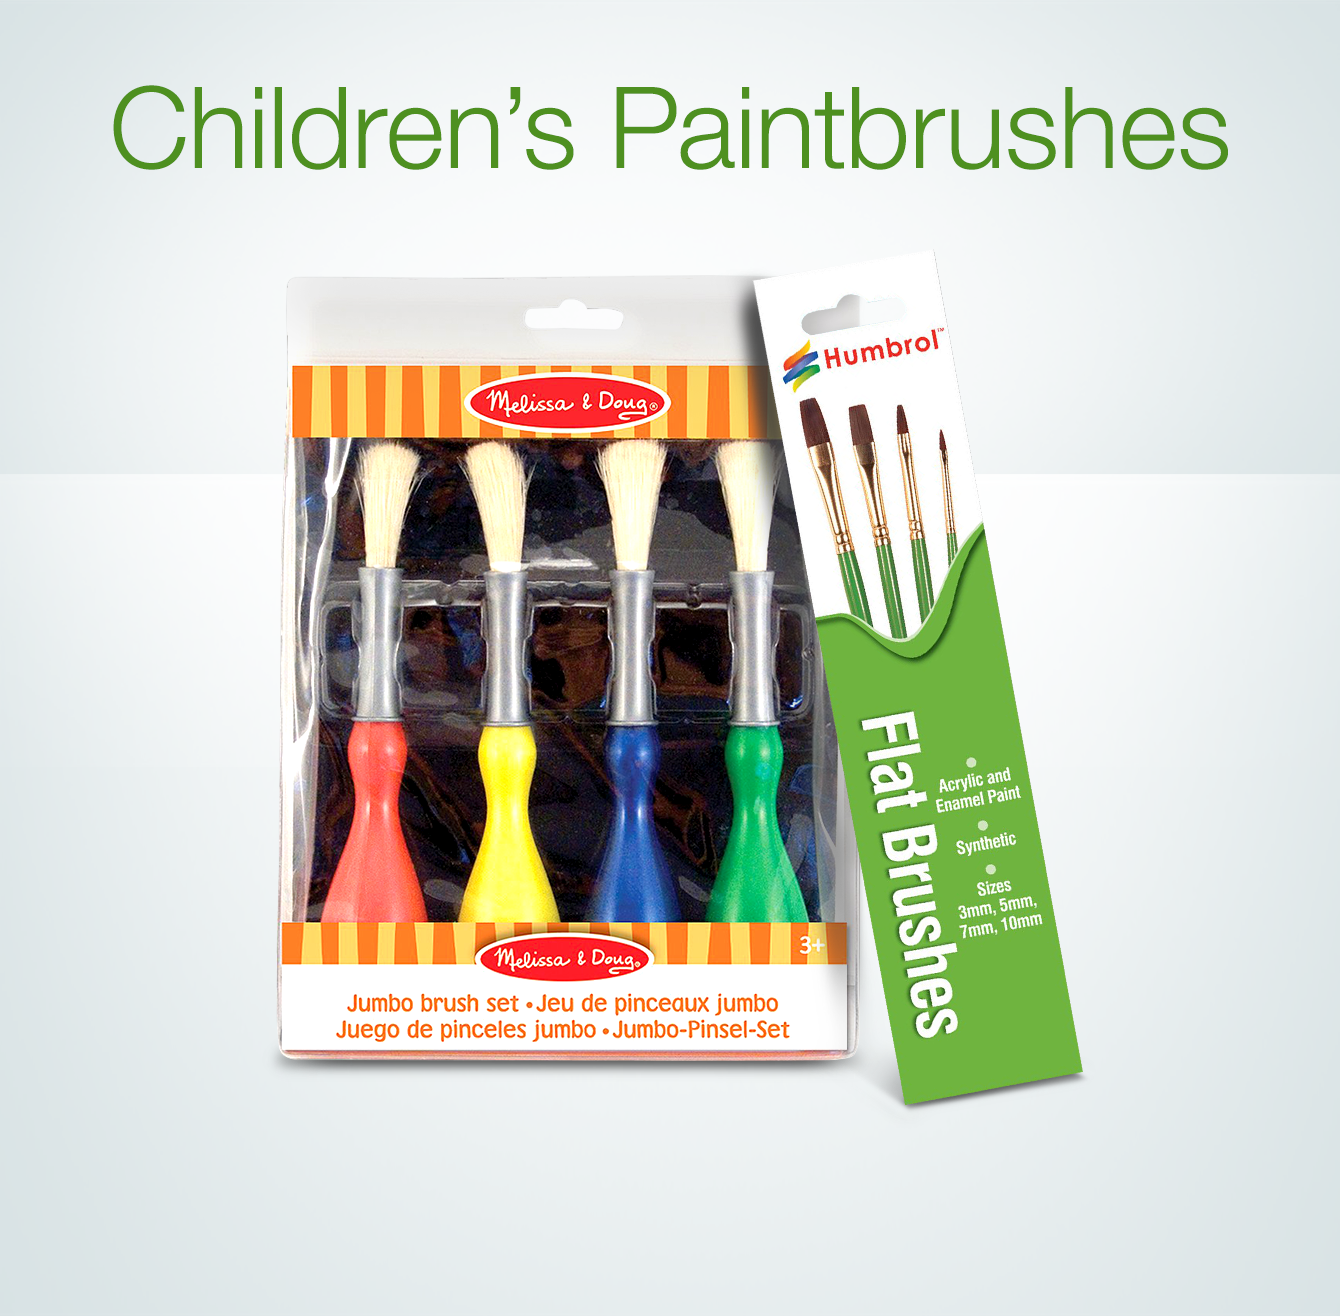 Children's Paintbrushes